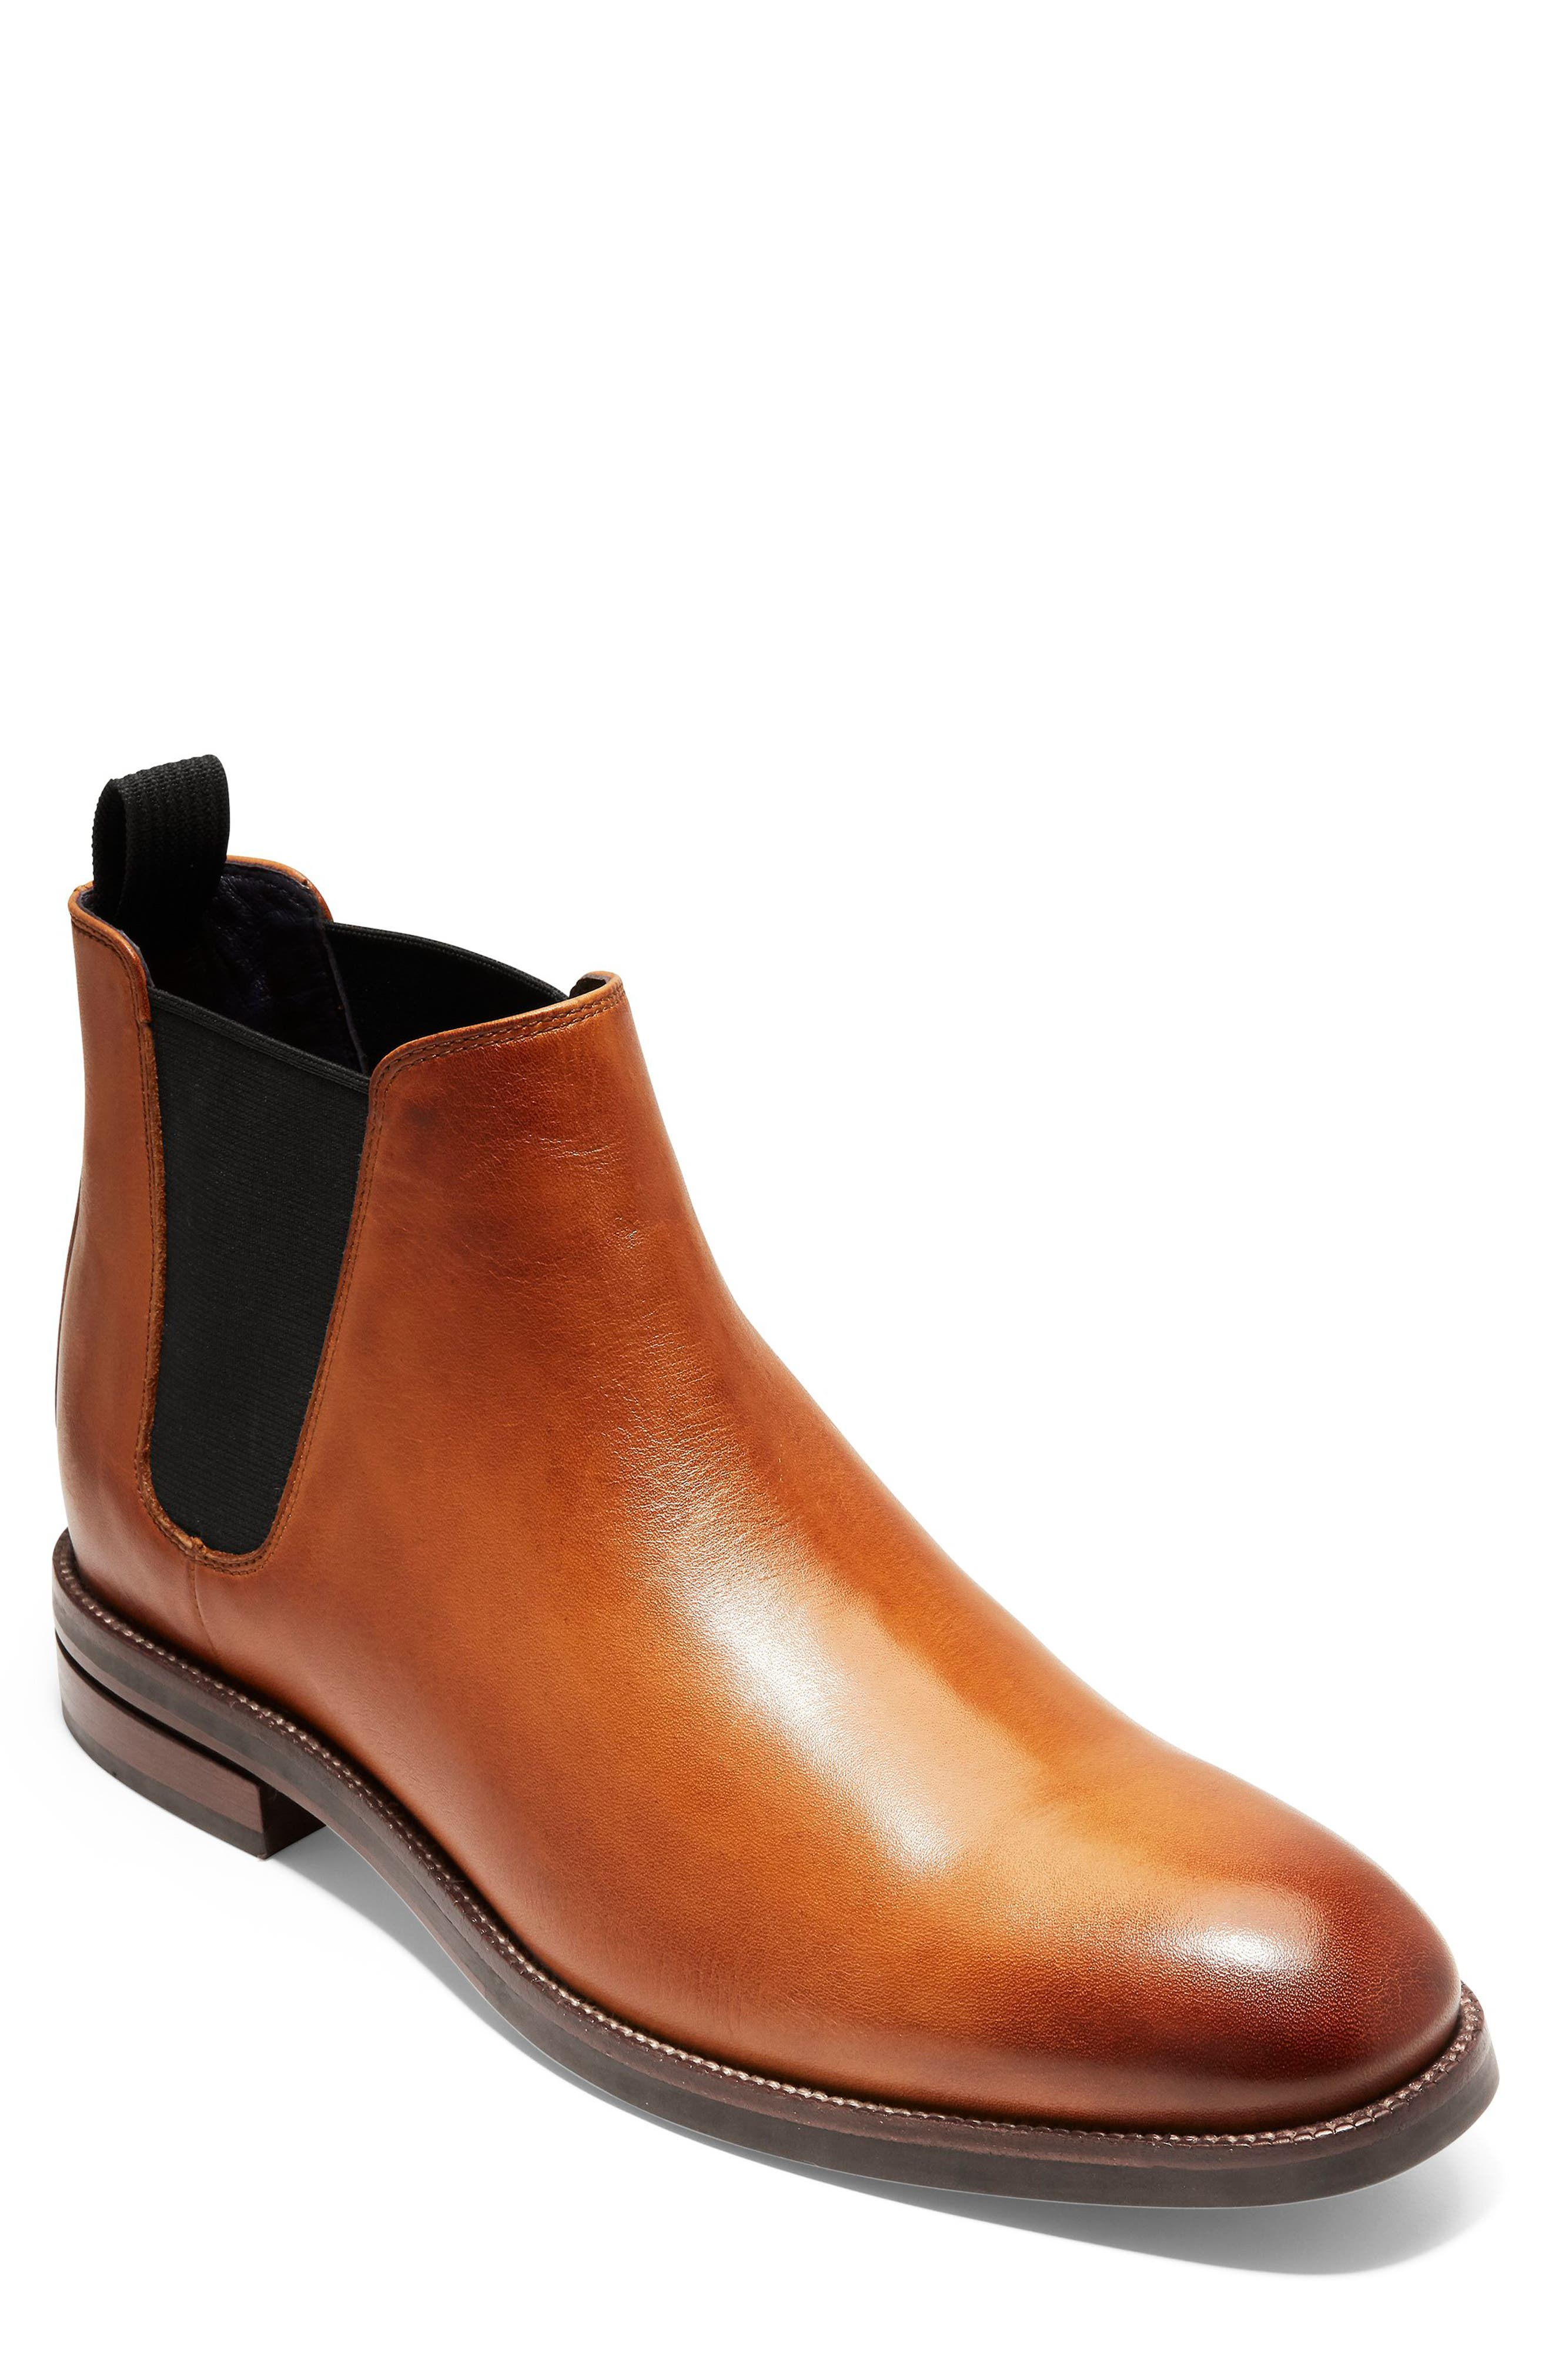 6f164daabe1 Mens Cole Haan Boots